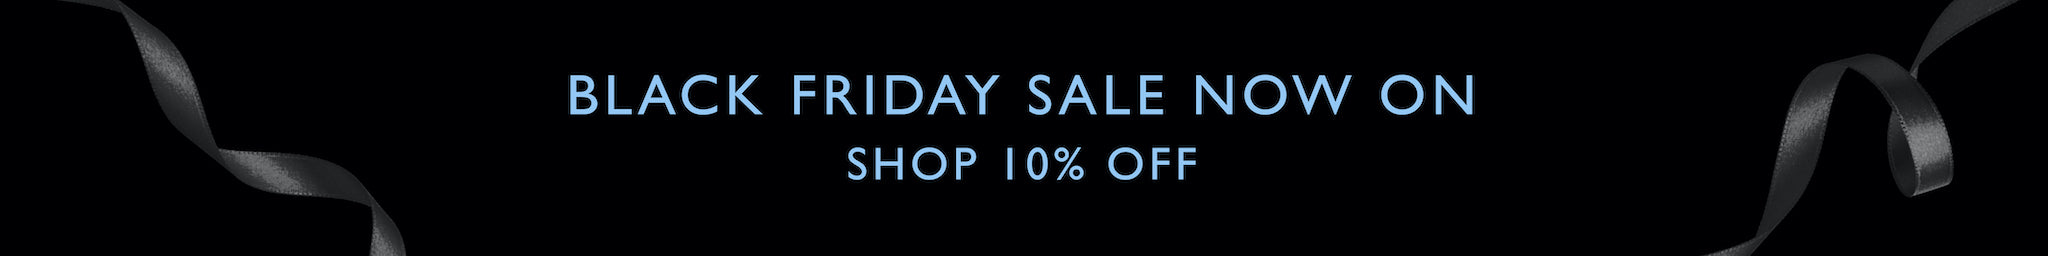 Black Friday Sale Now On. Shop 10% off.